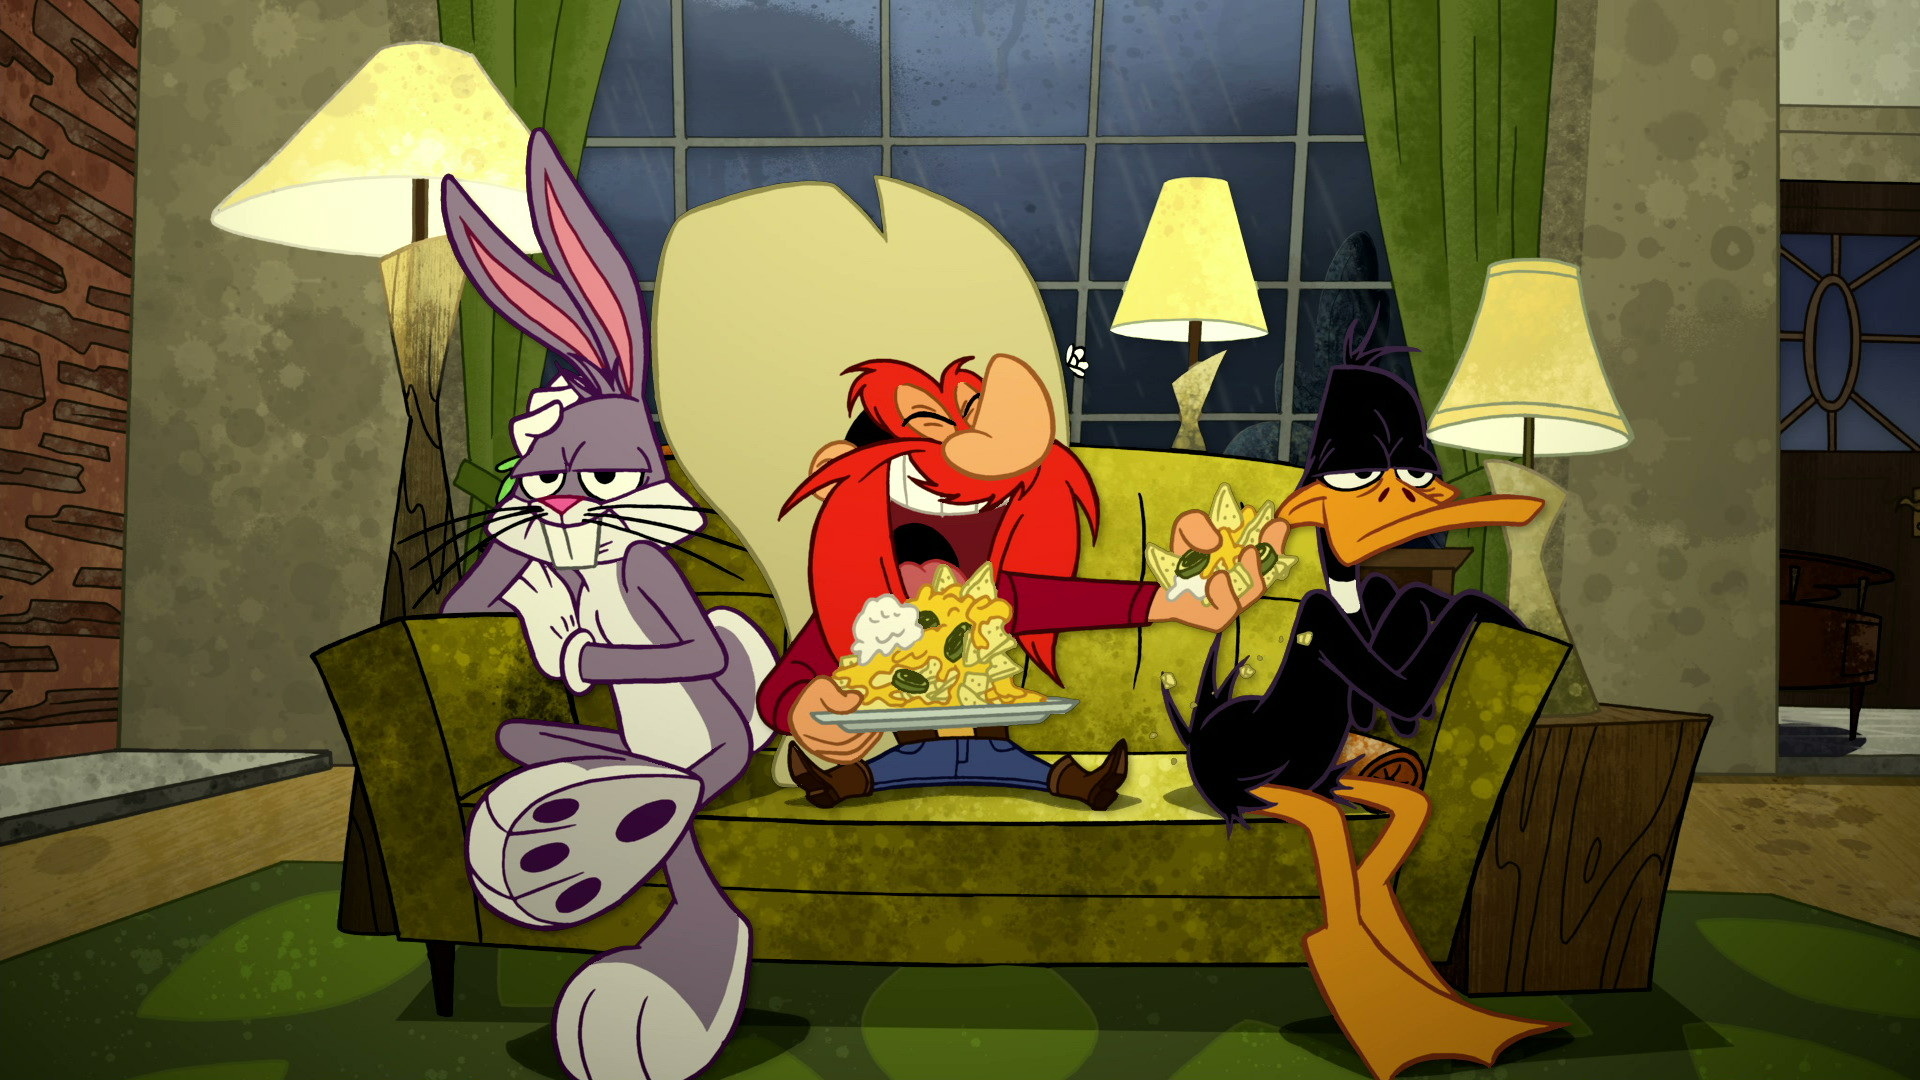 1920x1080 Looney tunes gangster wallpaper - photo#20